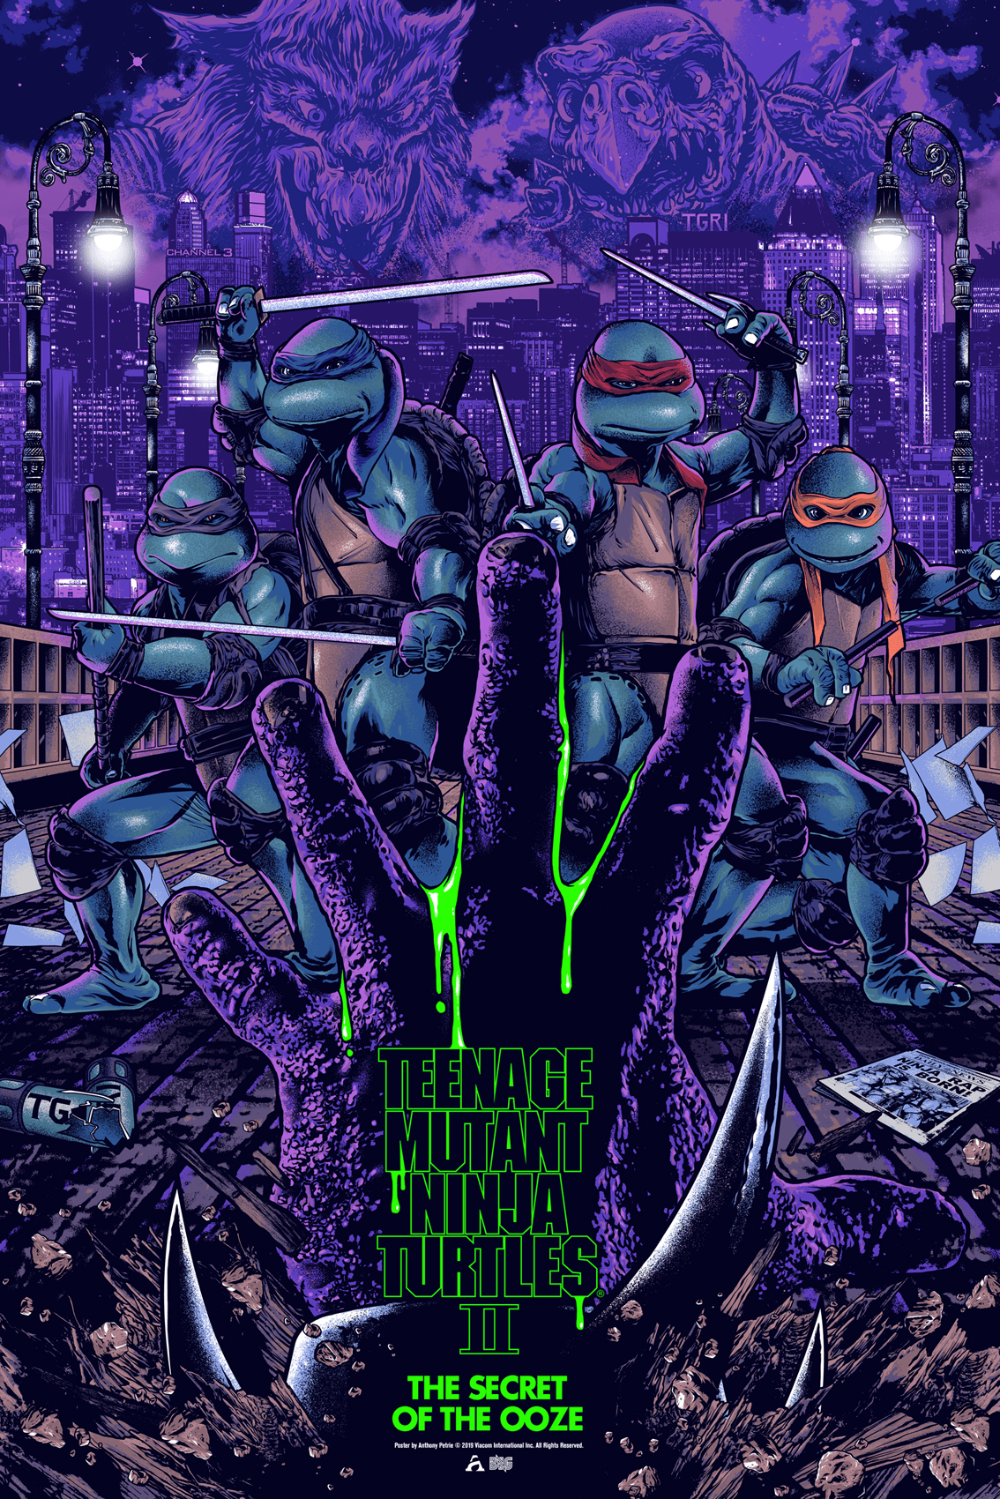 Tmnt 2 The Secret Of The Ooze Poster On Behance Teenage Mutant Ninja Turtles Art Teenage Ninja Turtles Teenage Mutant Ninja Turtles